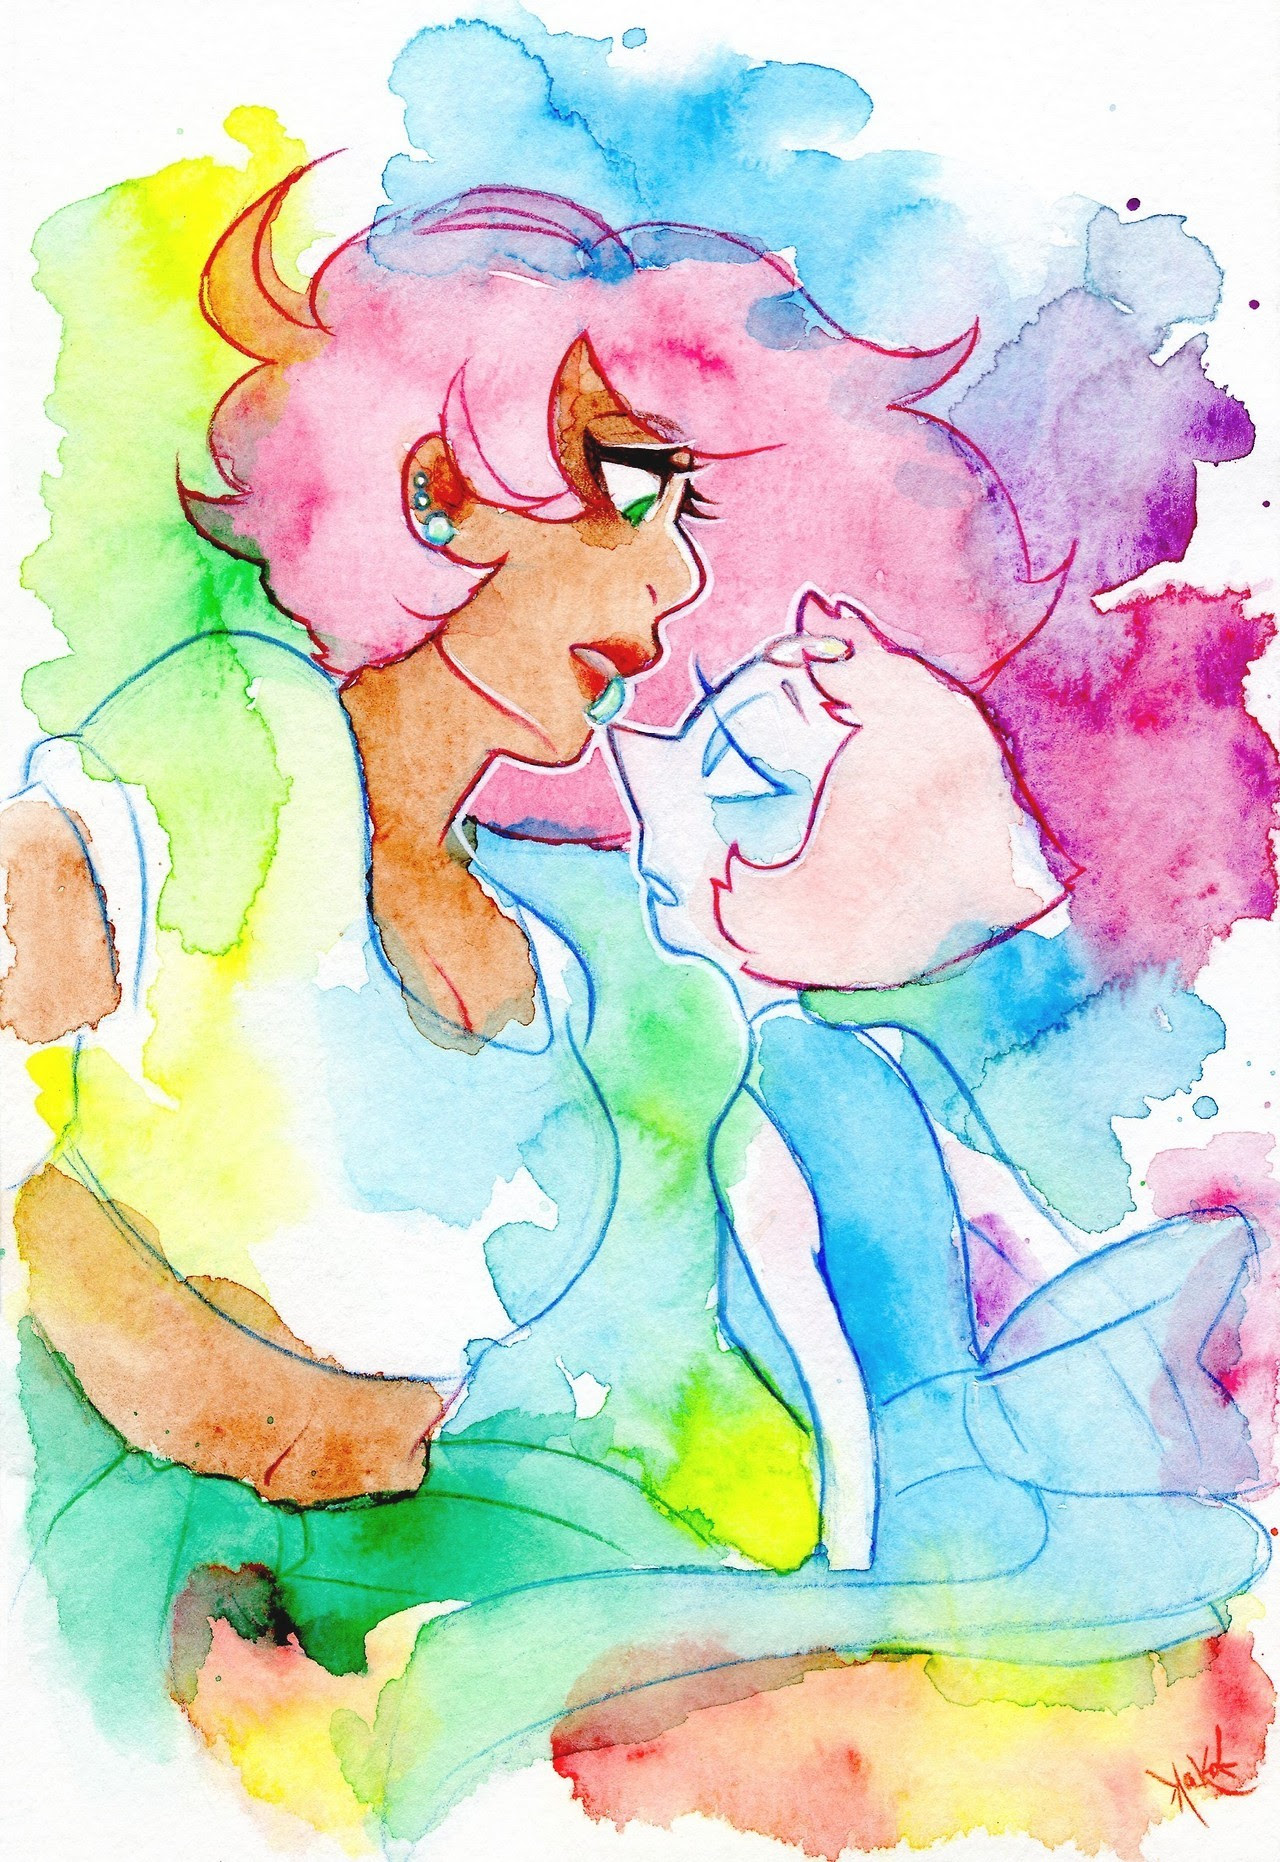 ♪ ~   Don't mind me remembering childhood memories. I tried something new with watercolors. 10/10 would do it again.